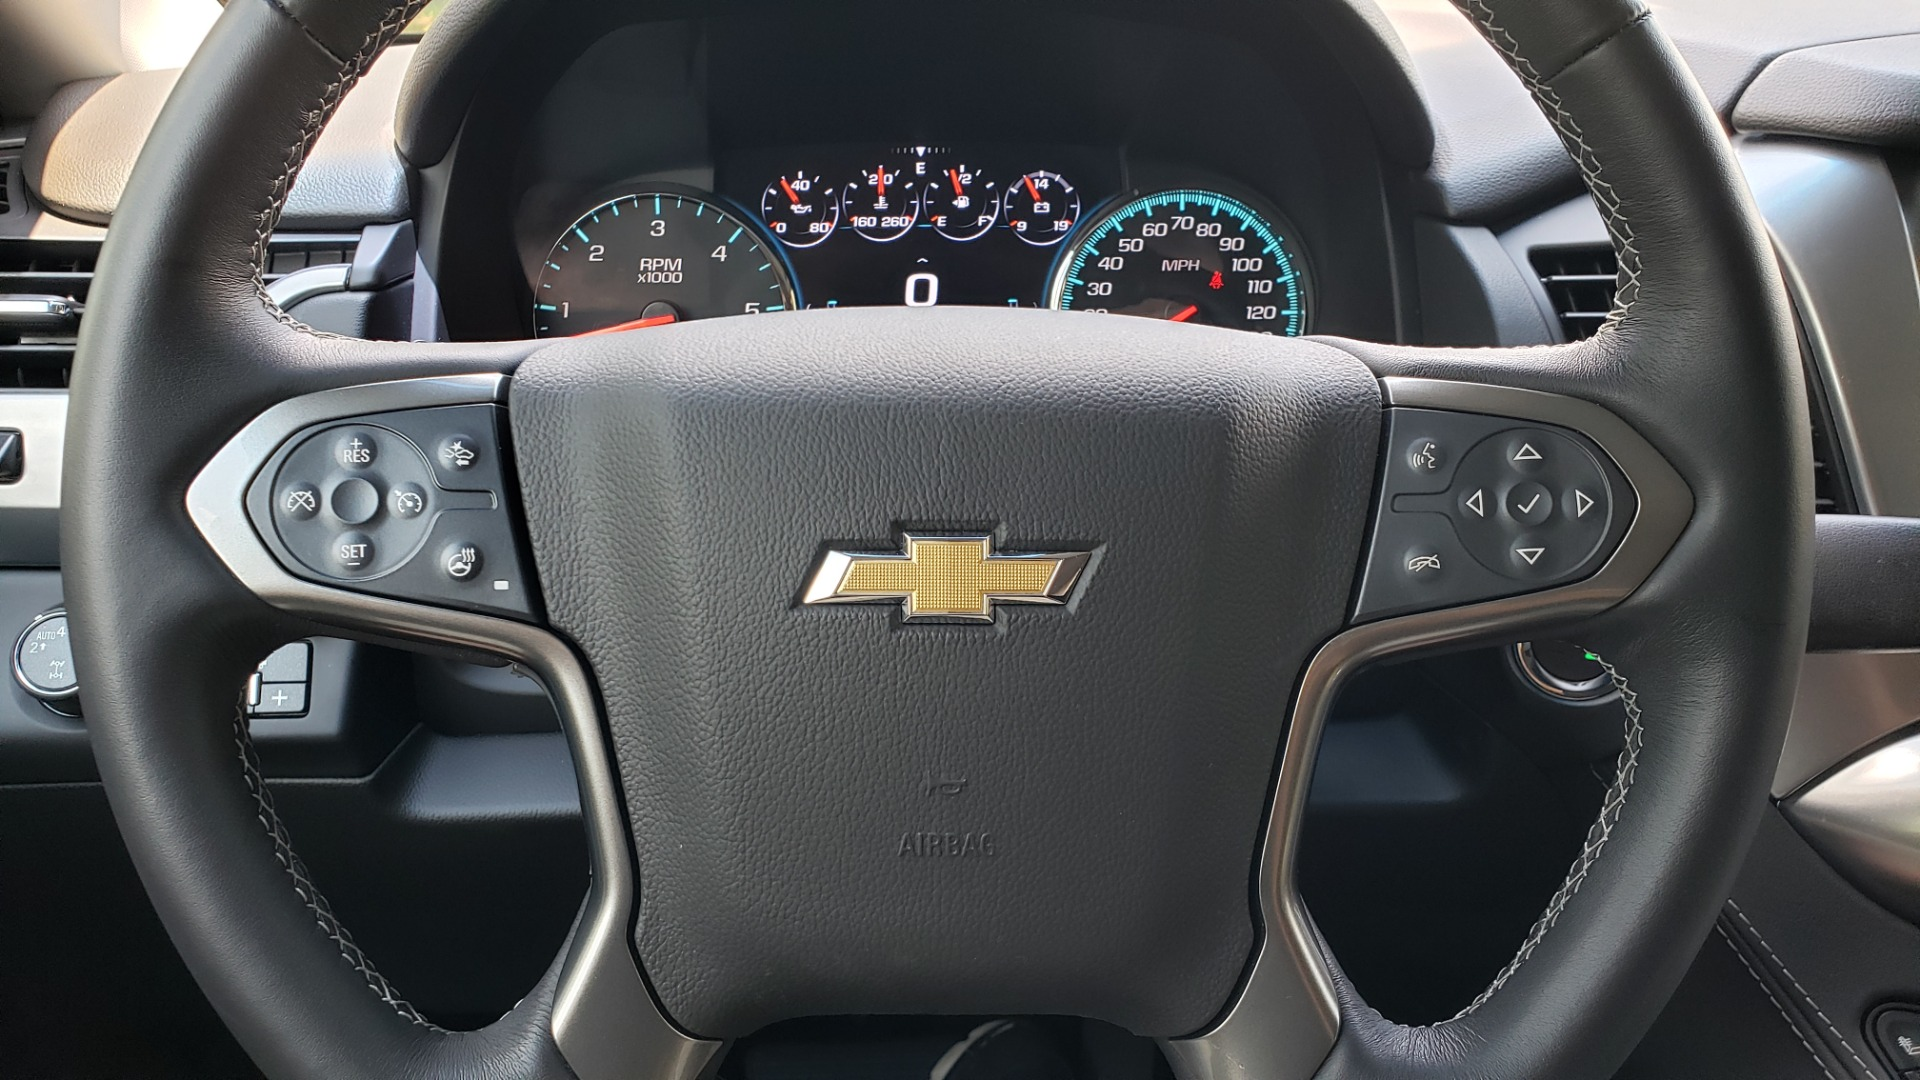 Used 2018 Chevrolet TAHOE PREMIER 4WD / RST EDIT / NAV / SUNROOF / CAMERA / 3-ROW for sale Sold at Formula Imports in Charlotte NC 28227 44